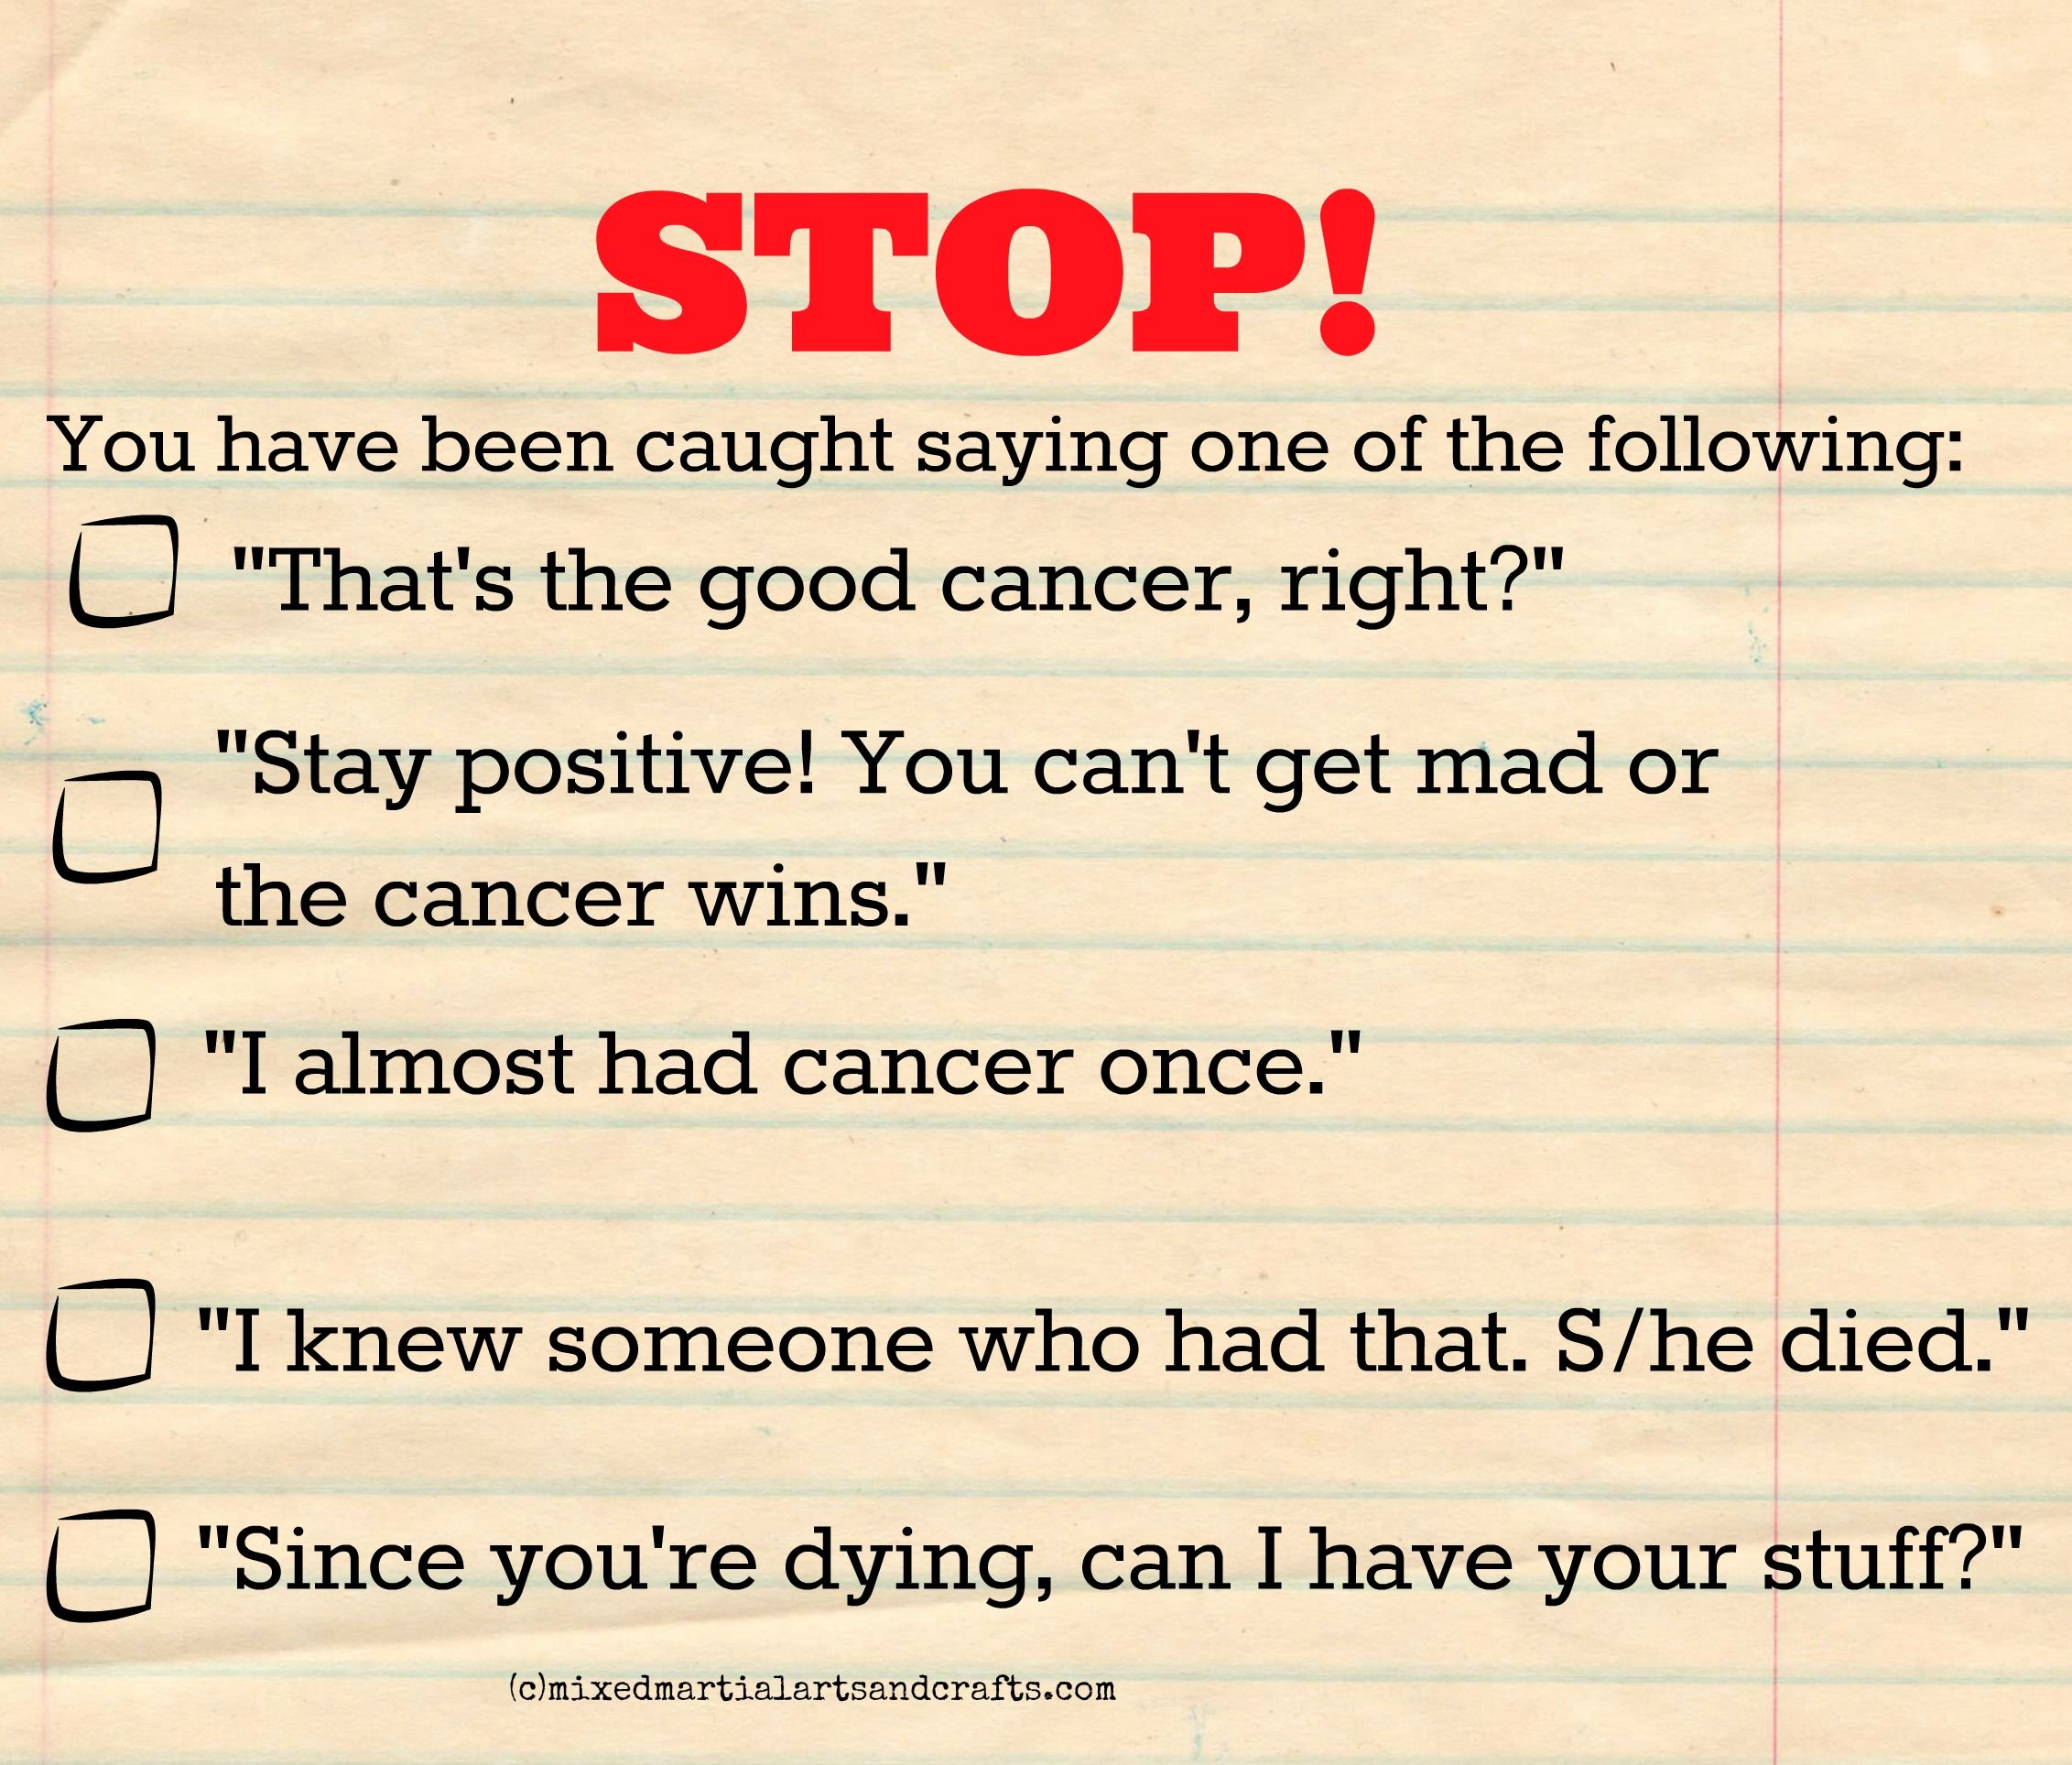 Online dating for cancer patients